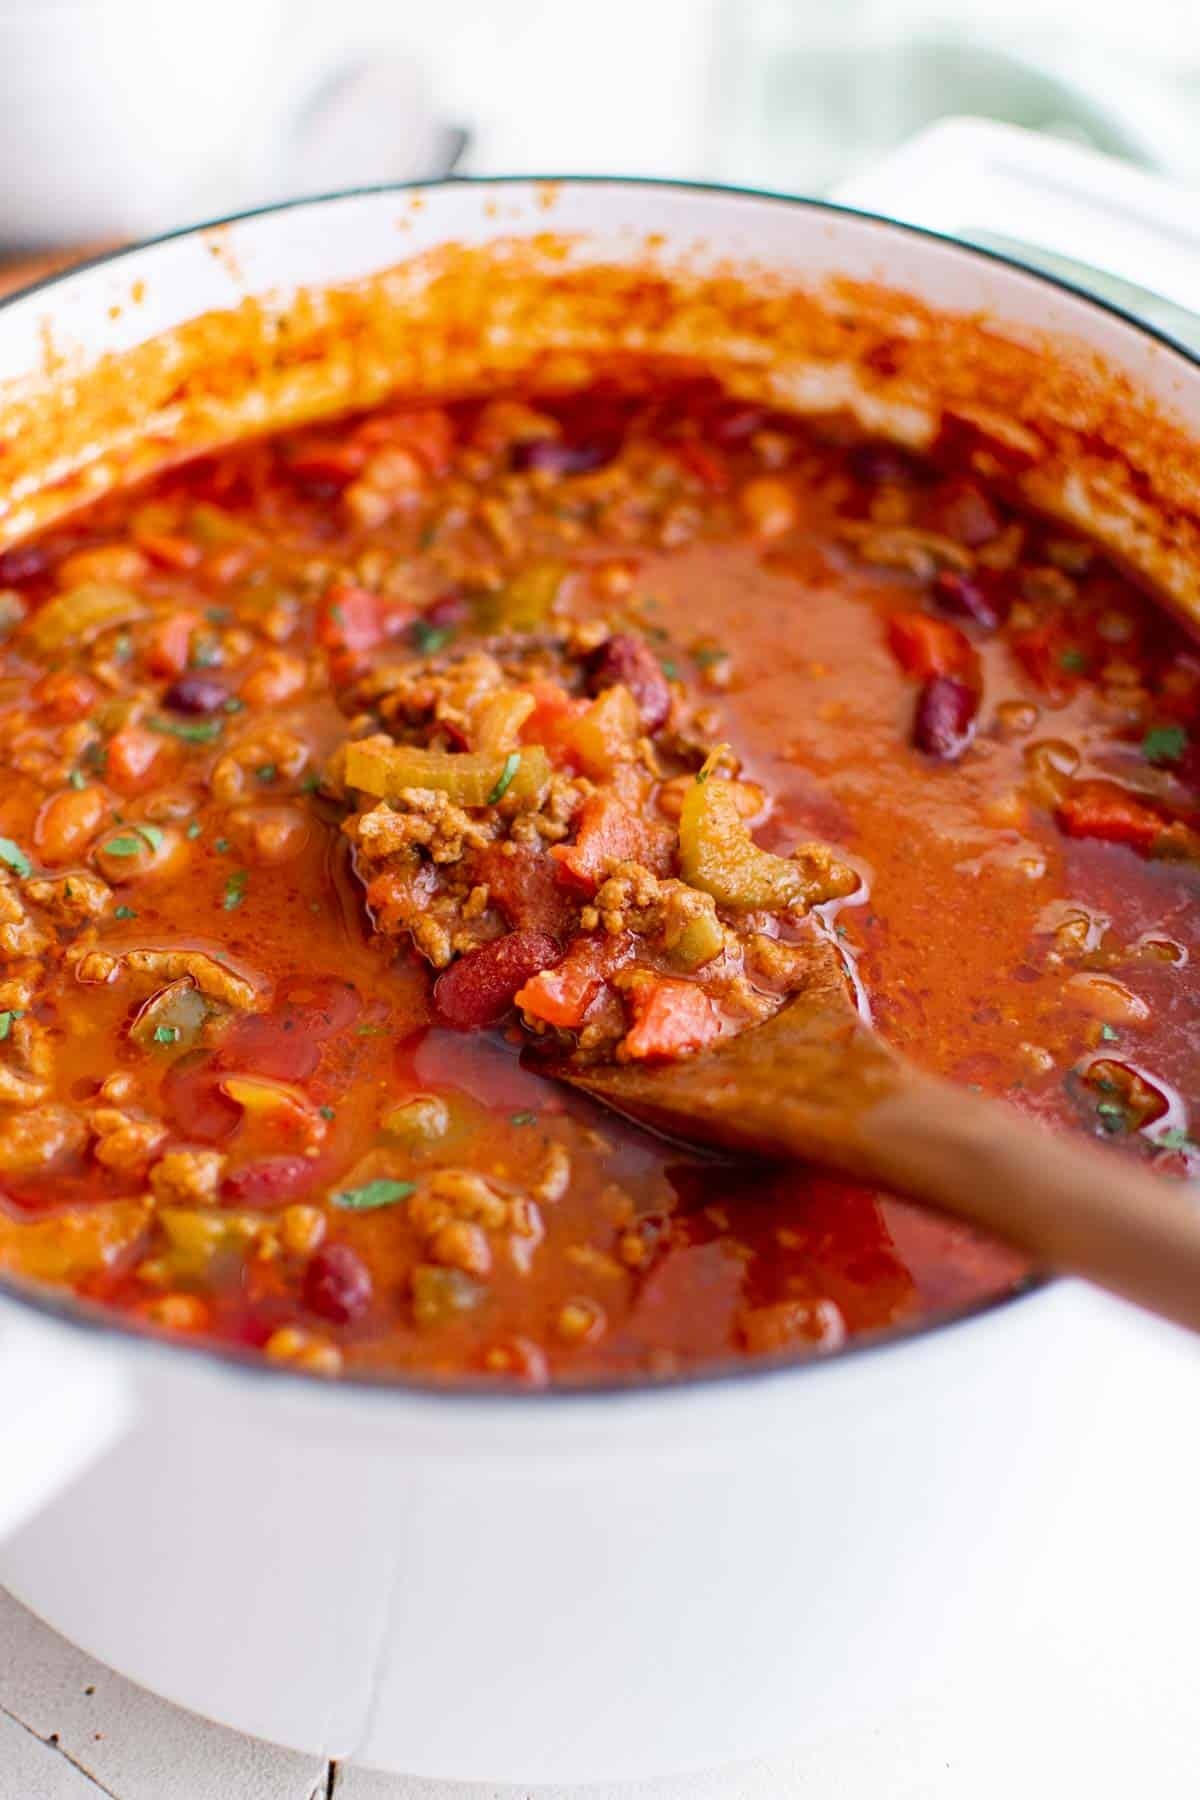 close up view of the completed wendys chili recipe